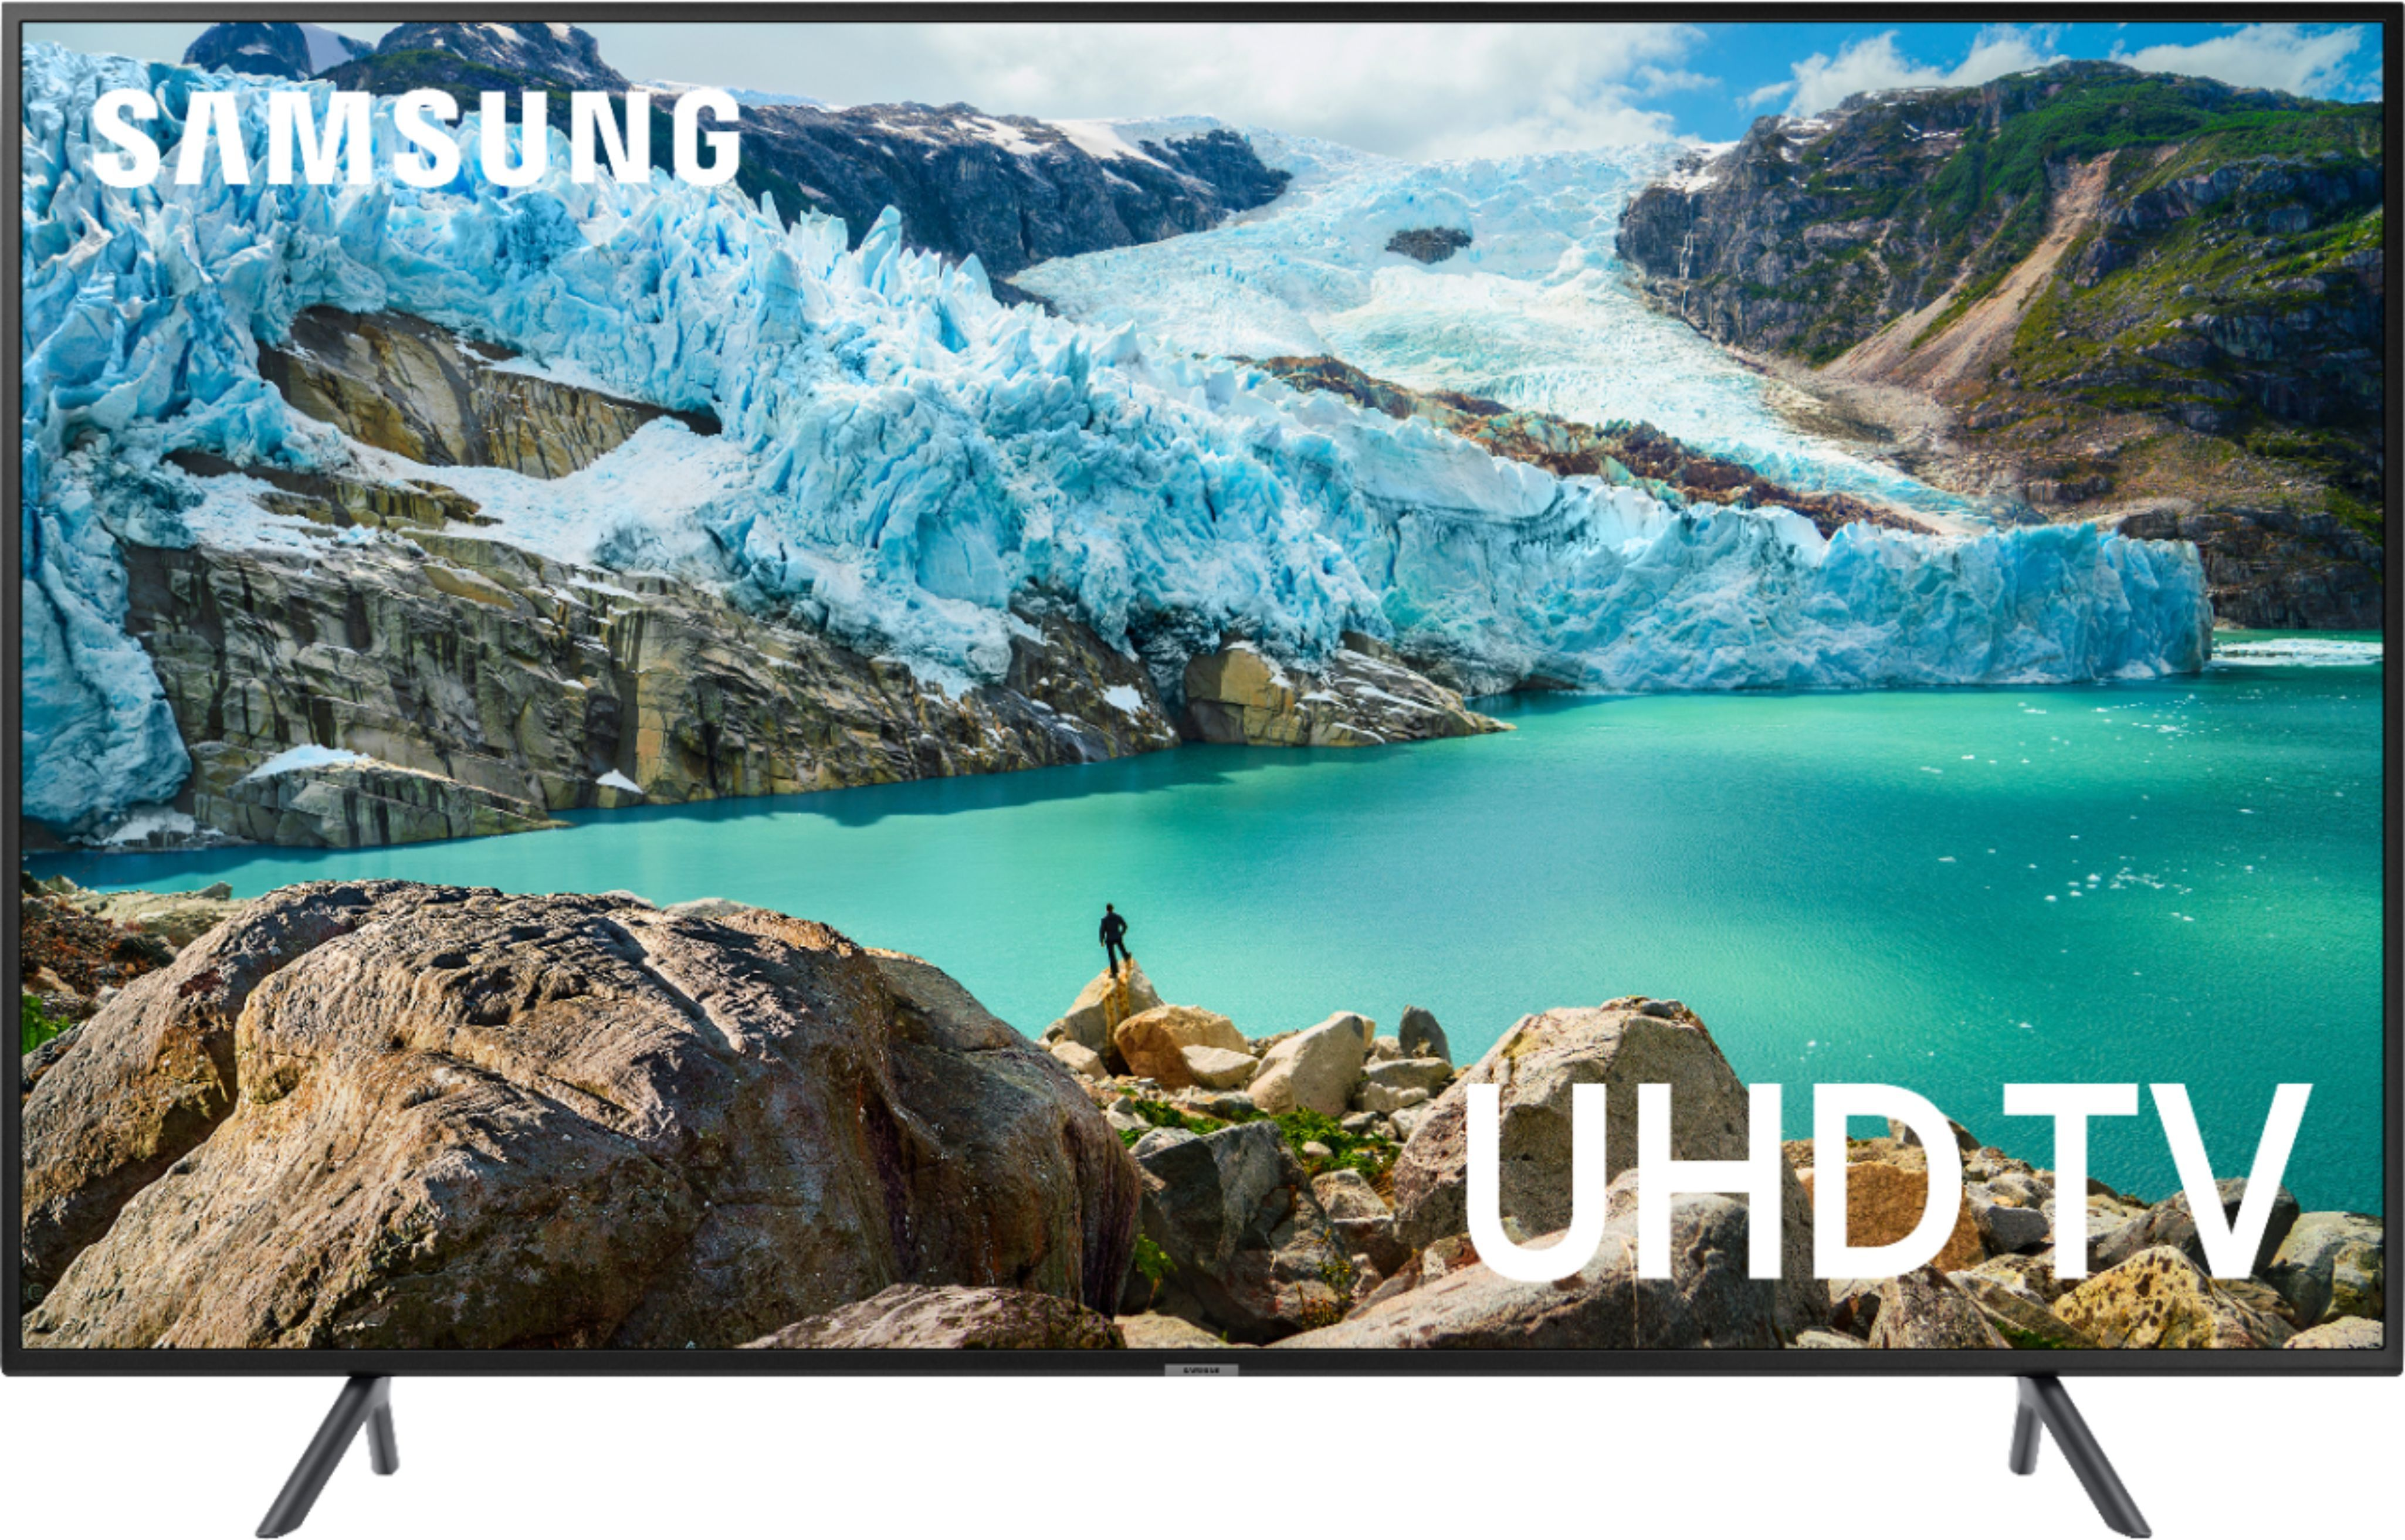 Shop Samsung 65 Class Led 7 Series 2160p Smart 4k Uhd Tv With Hdr